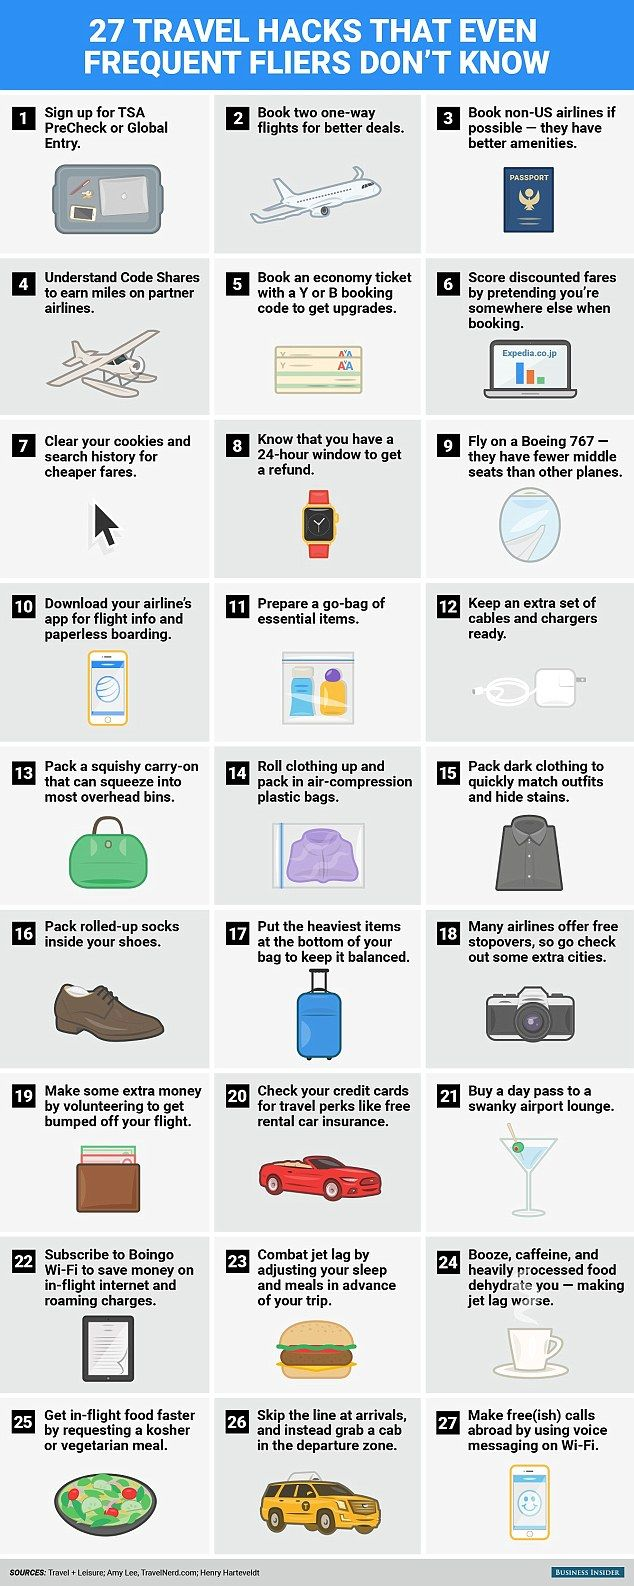 There 27 hacks are extremely helpful for vacation. Some you've probably never heard before.